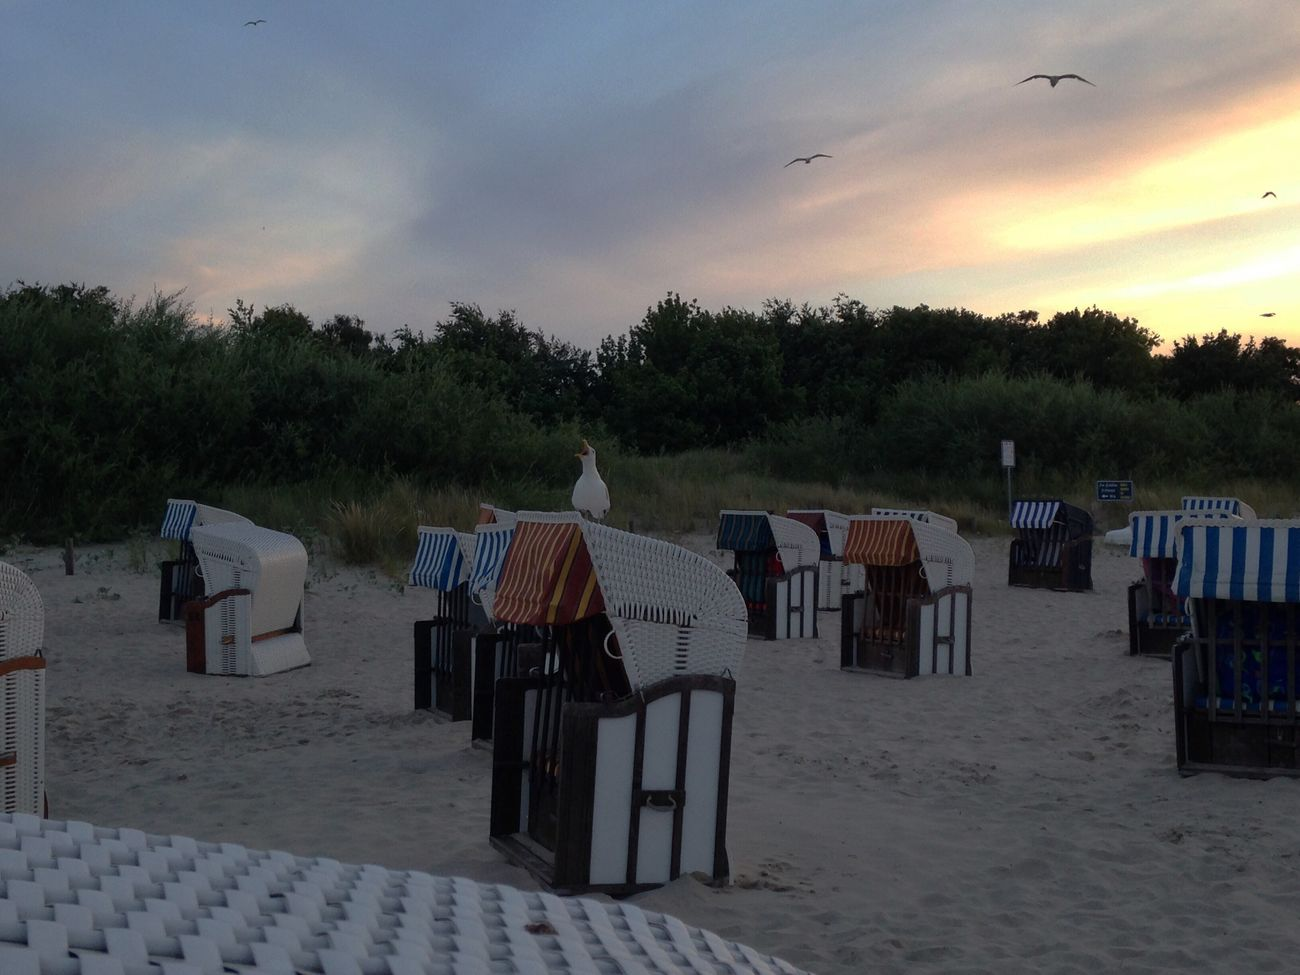 Sky Outdoors Sand Beach Tree Nature No People Animal Themes Day Seagull Ocean Seaside Shore Küste Ostsee Baltic Sea Quiet Moments Meer Vacations Holiday Vogel Sunlight Evening Twilight Dusk